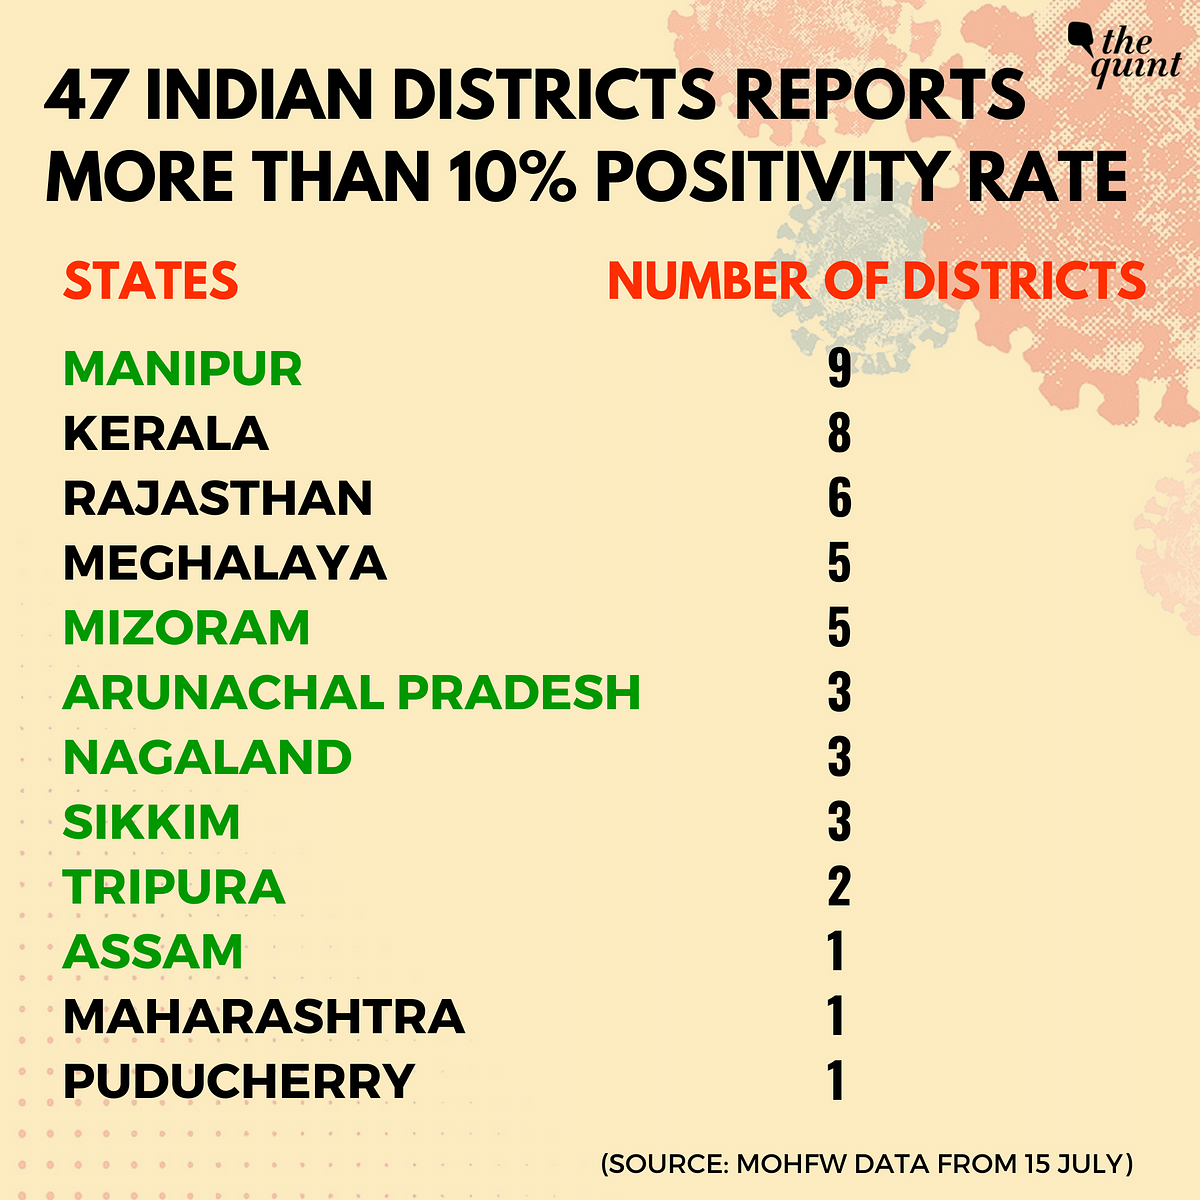 Why COVID-19 Cases, Positivity Rate in Northeast States Are Still High